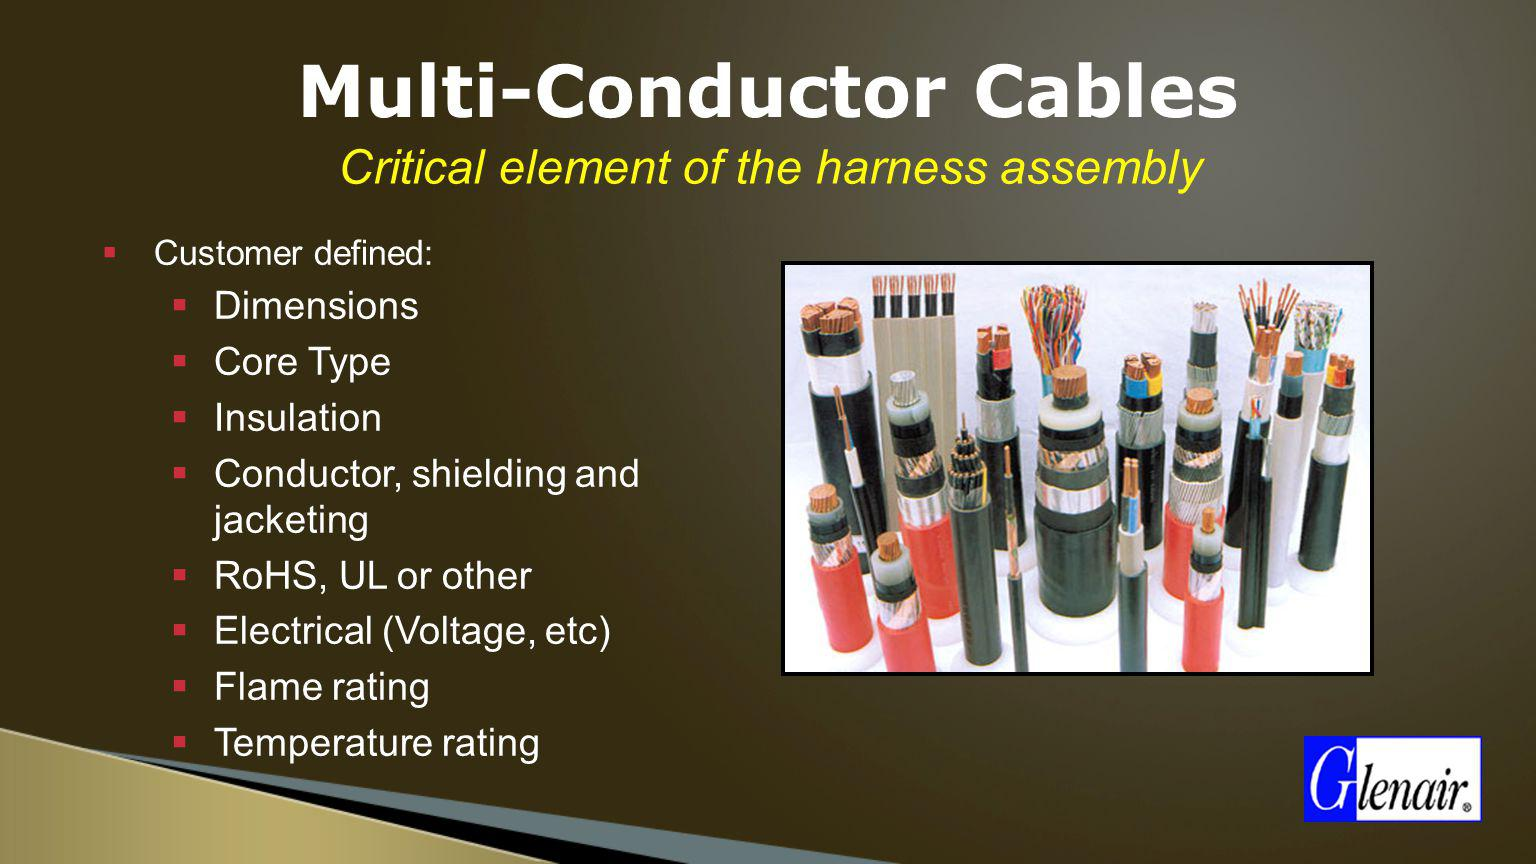 Multi-Conductor Cables